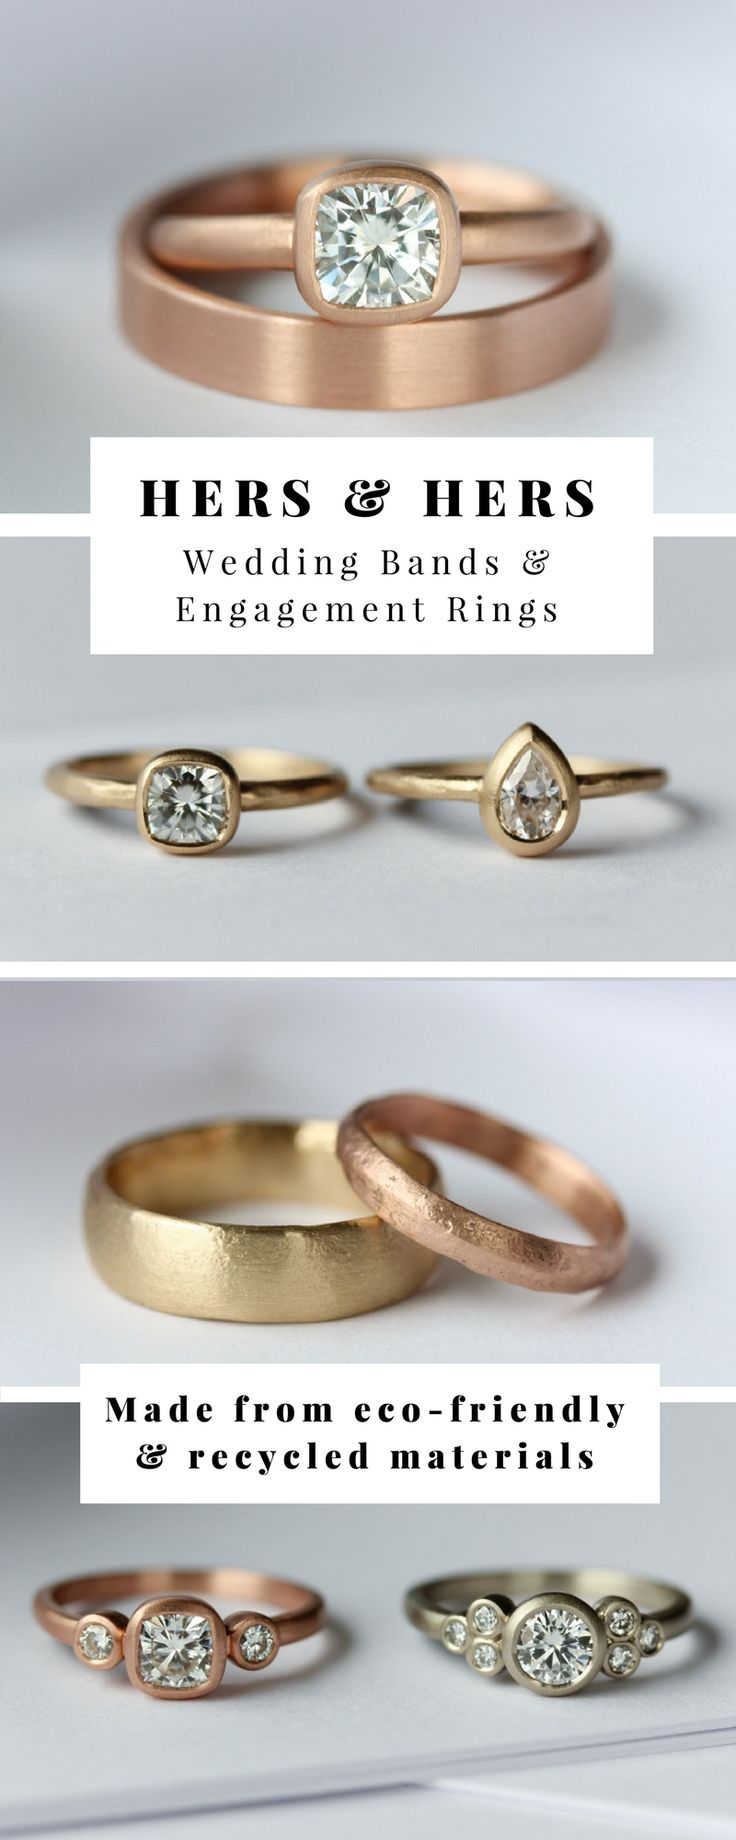 engagement rose brilliant in free custom oval wedding brand gold wrapped with pinterest rings by on beautiful conflict images a crafted is dresses diamond pamelabenglish ring rachael best cut the engagements